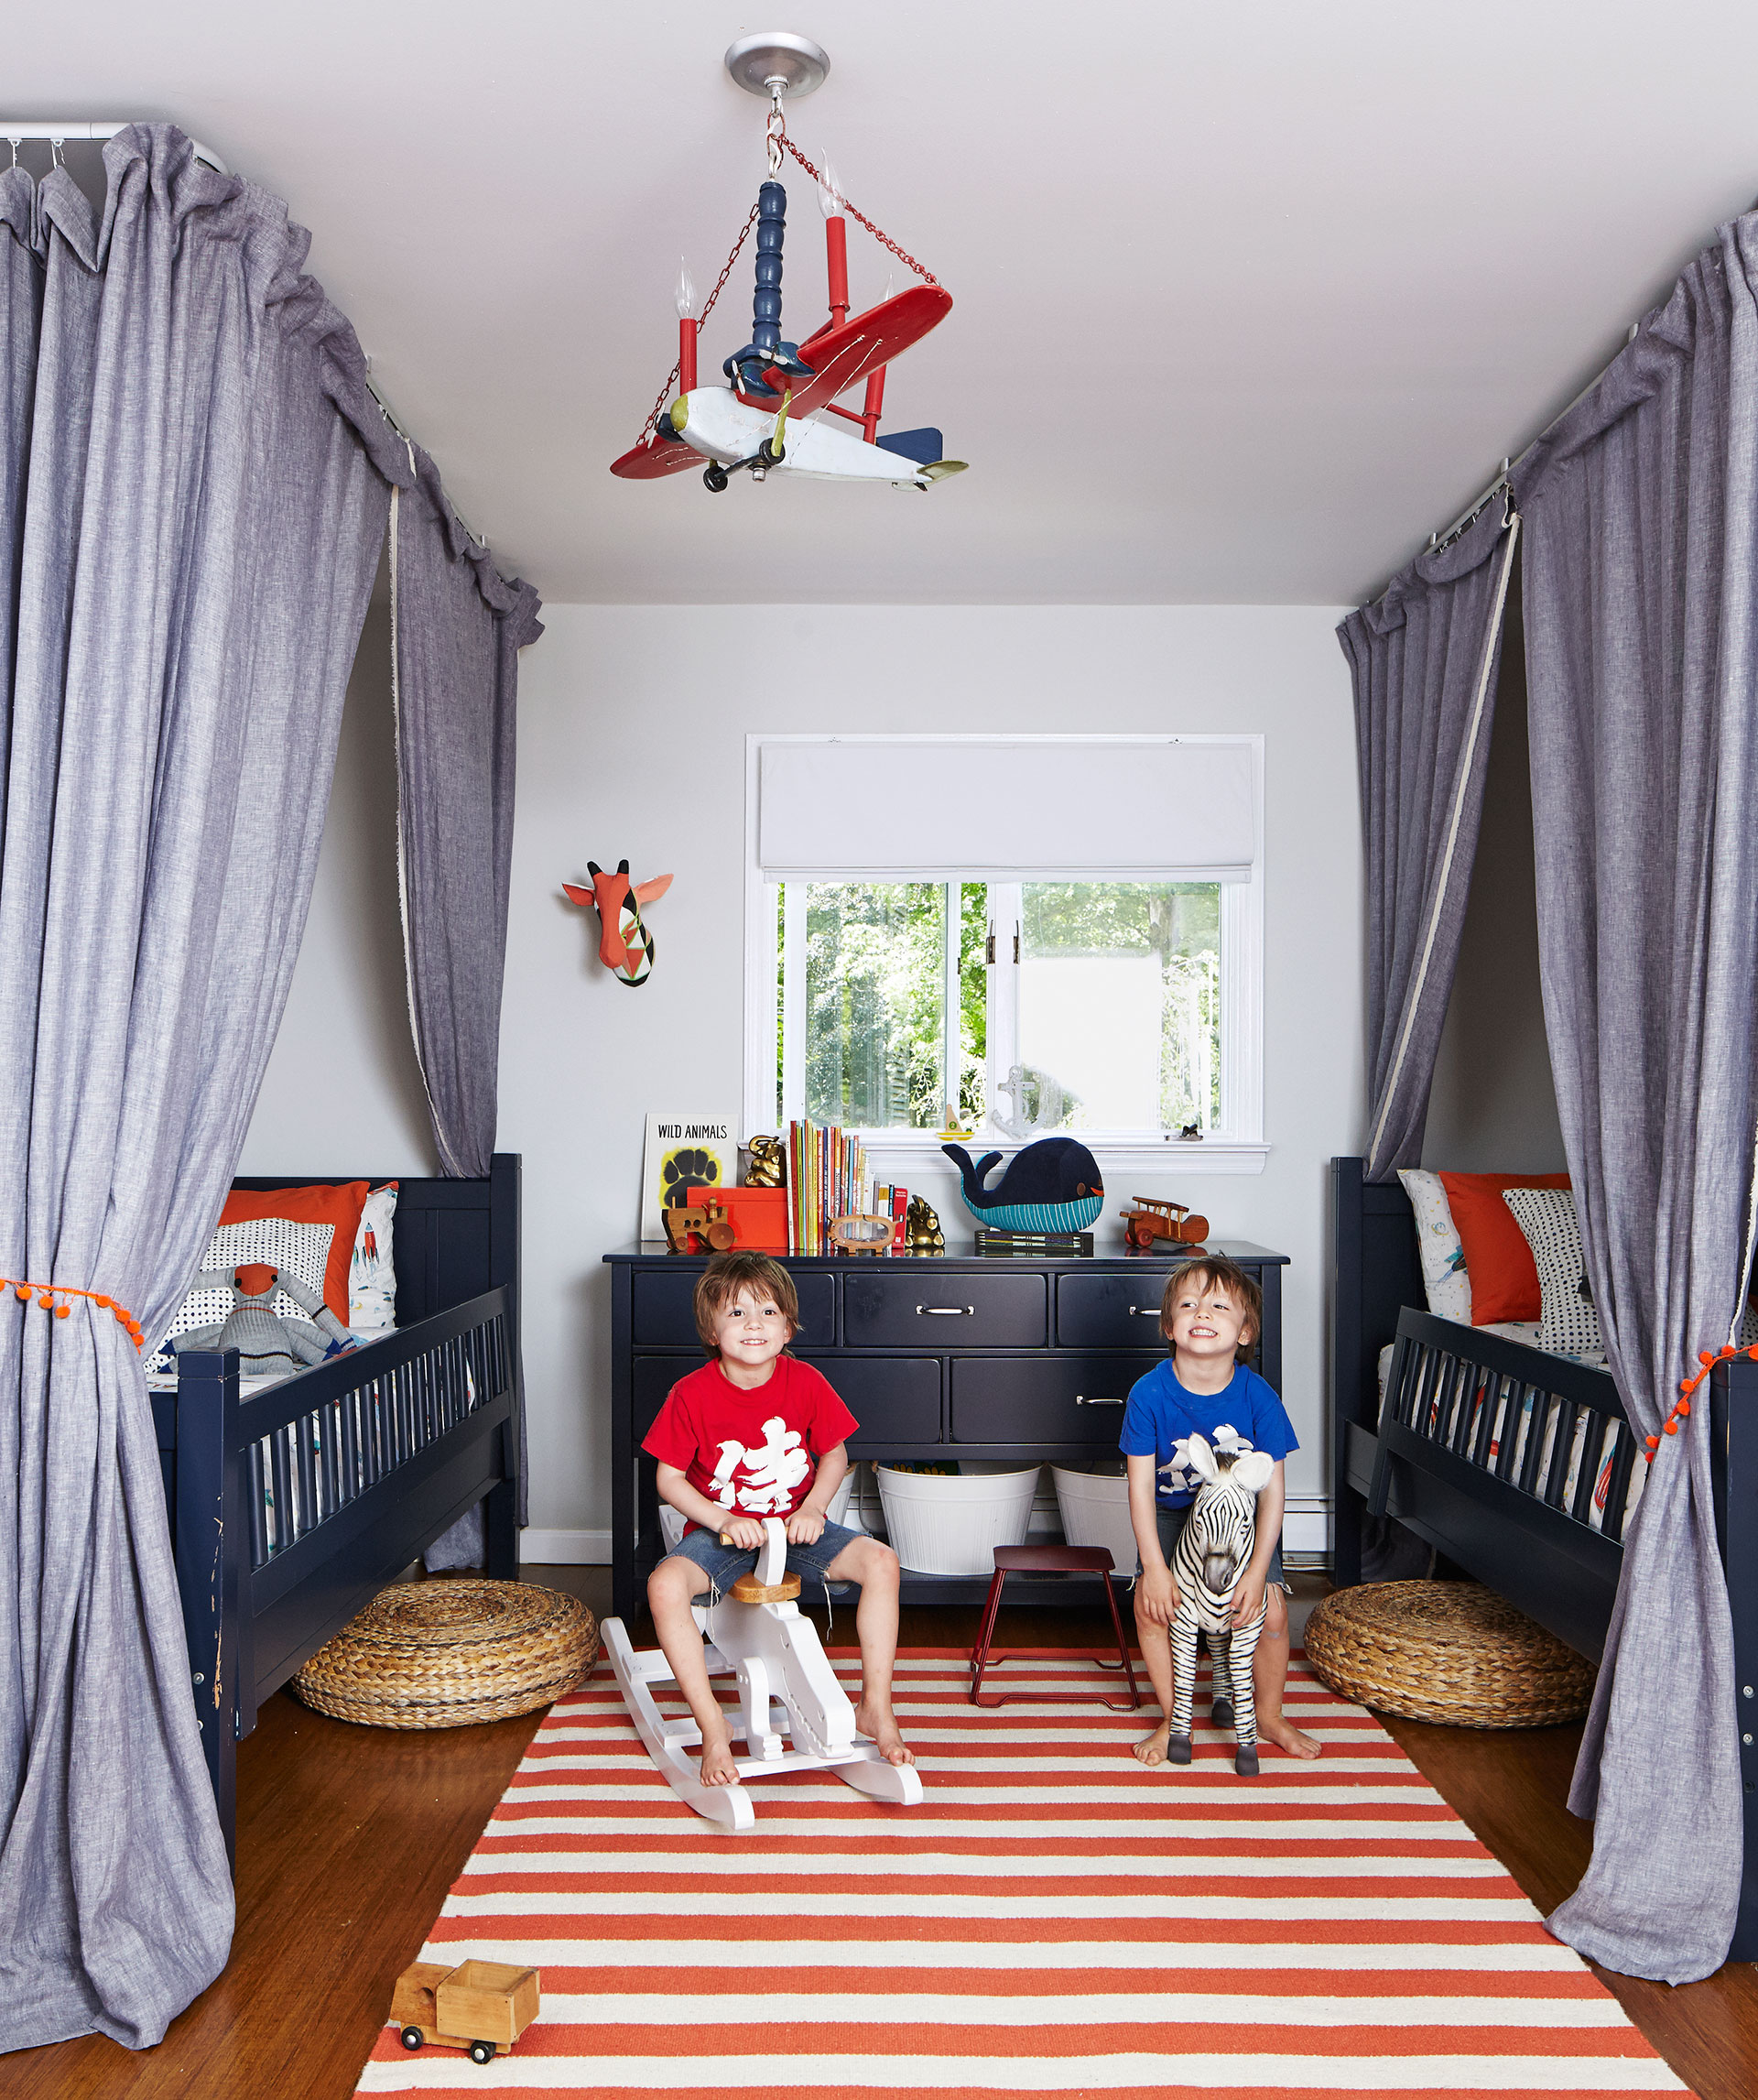 Kids Bedroom Decor stunning boys room decorating ideas gallery - decorating interior